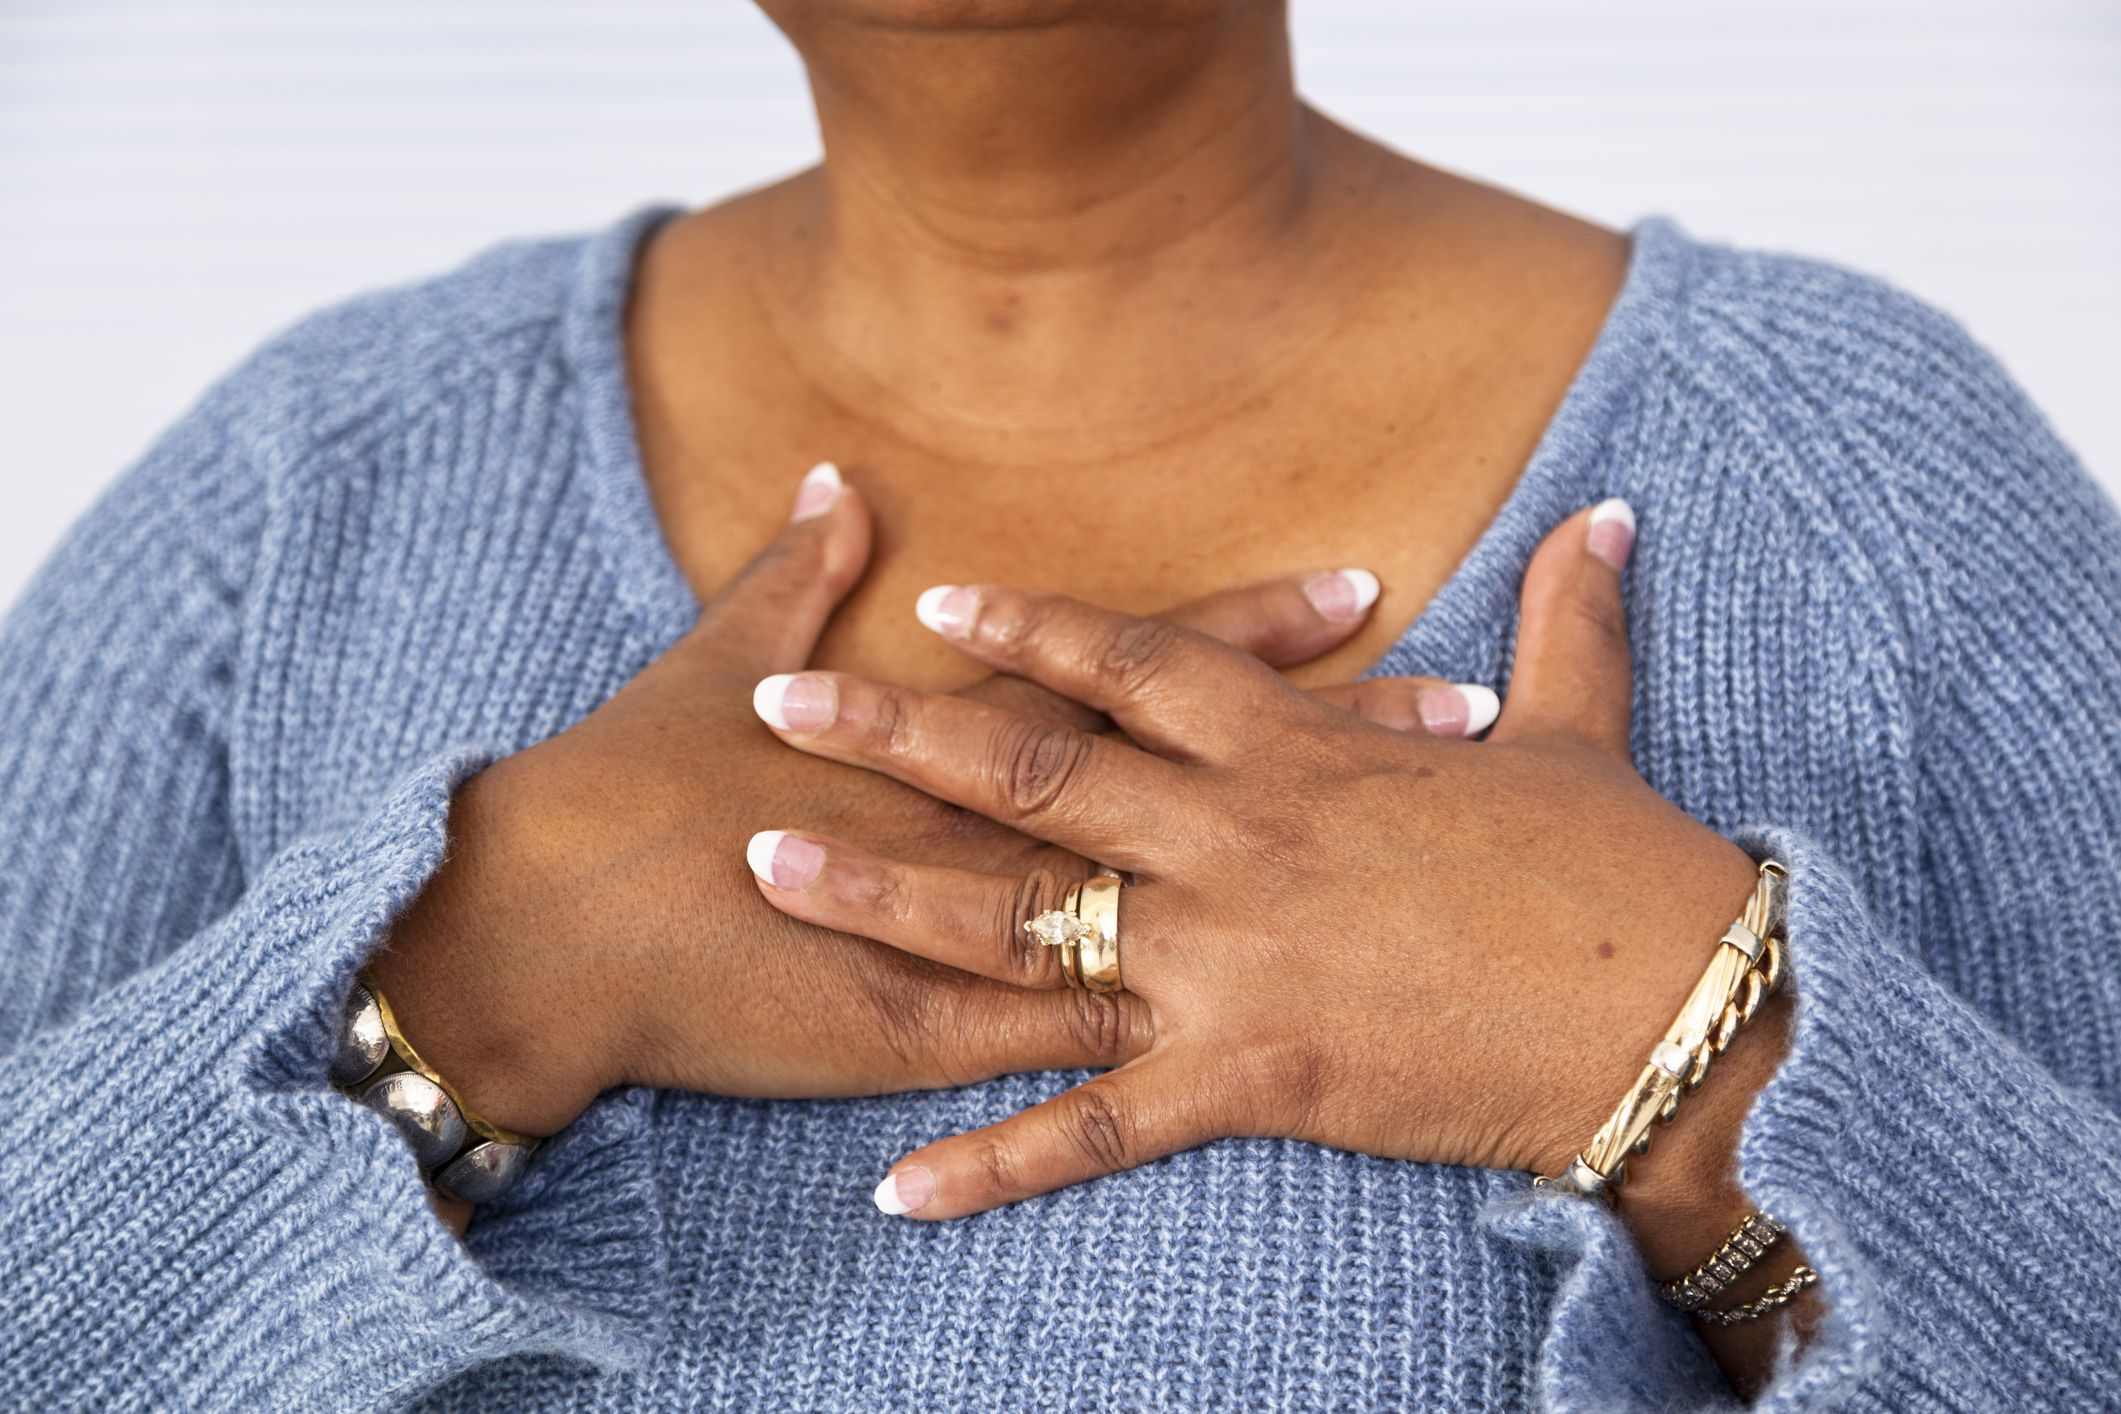 Panic Attacks, Heart Palpitations, and Your Thyroid